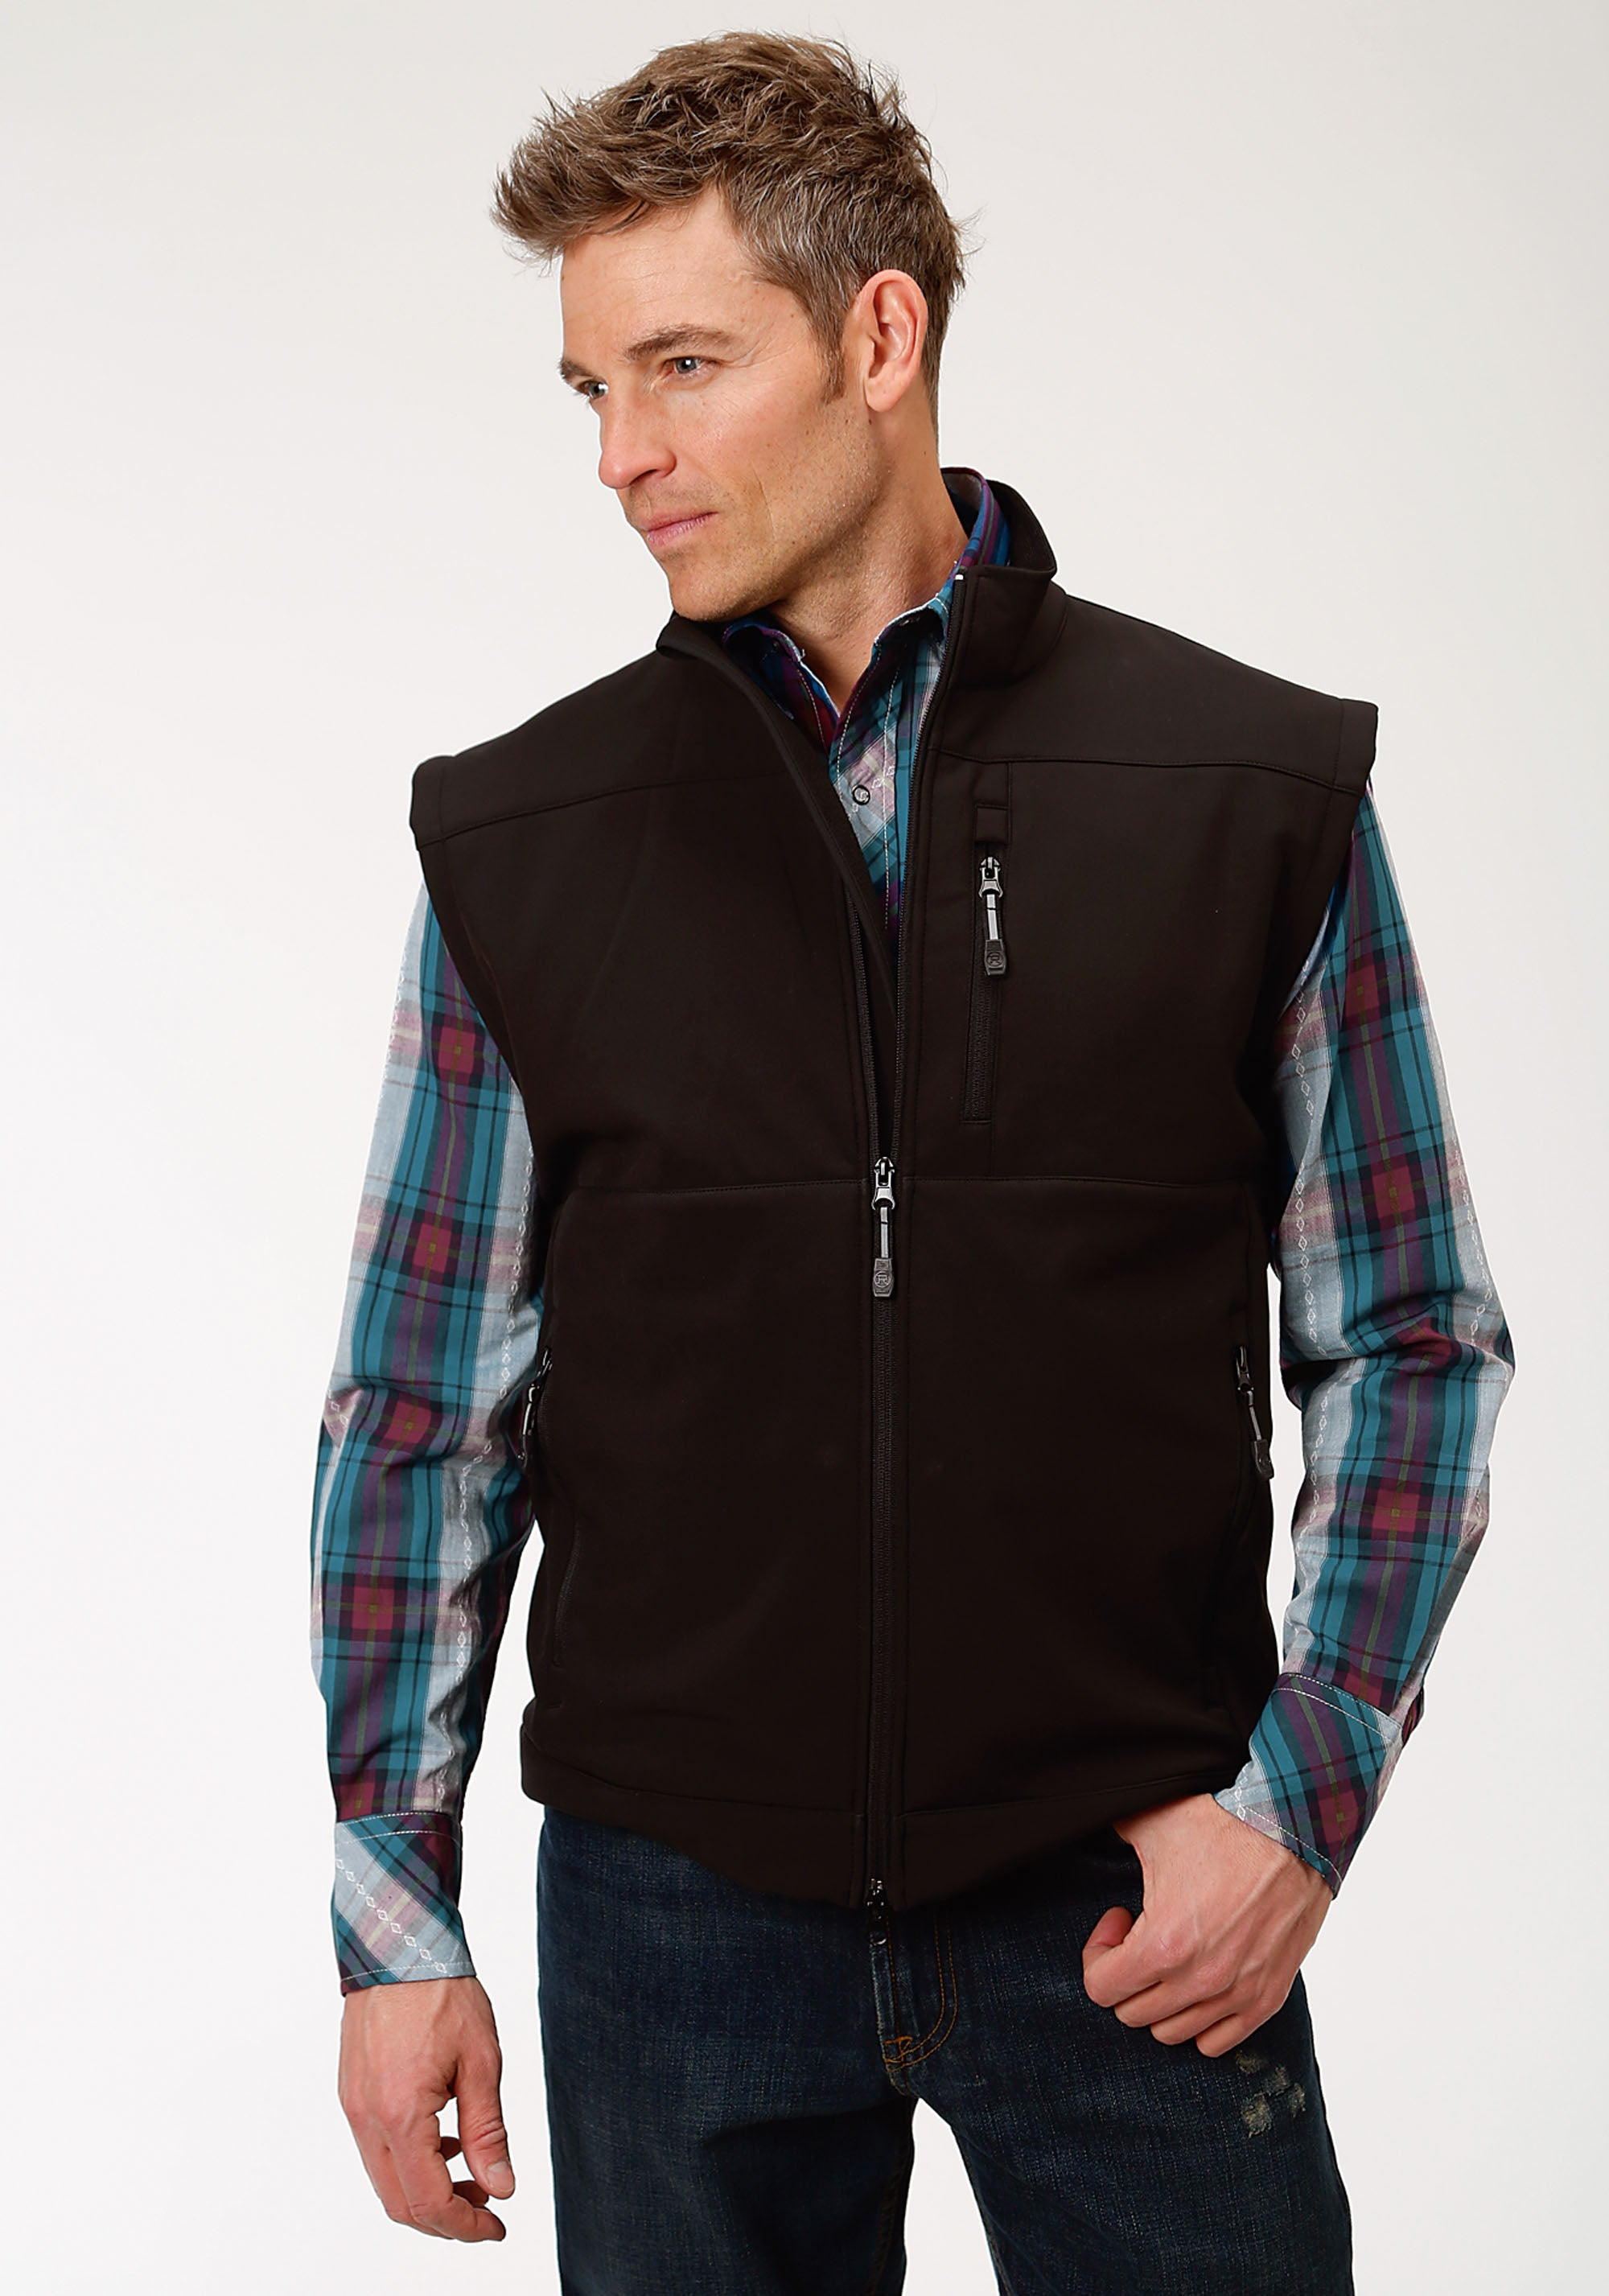 ROPER MENS BLACK 1321 BLACK WITH BLACK FLEECE ROPER OUTERWEAR- MEN'S VEST